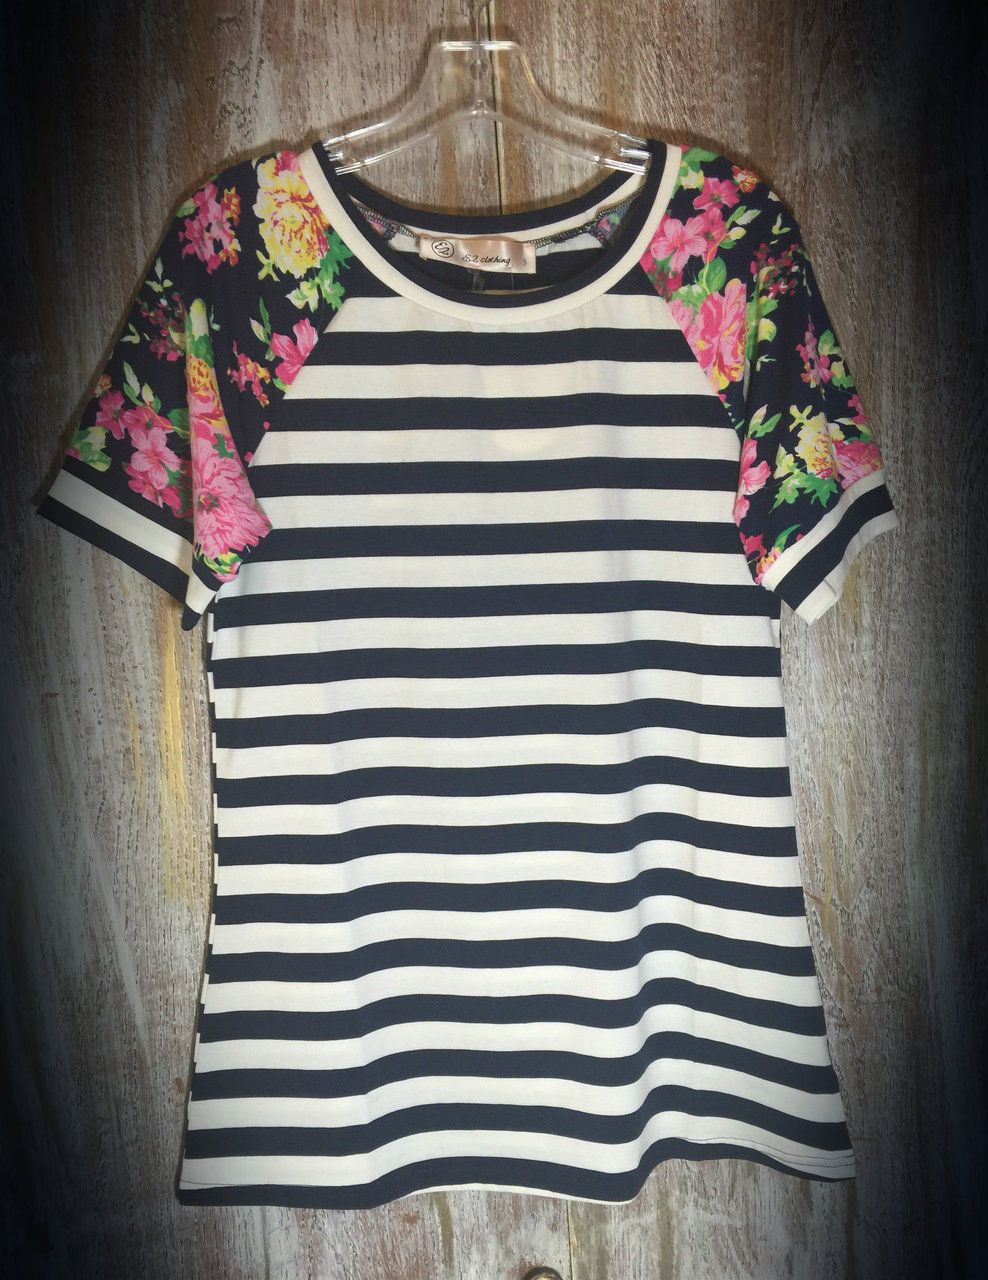 The Bling Box - Striped Navy Floral Sleeve Top, $28.99 (http://www.theblingboxonline.com/striped-navy-floral-sleeve-top/)